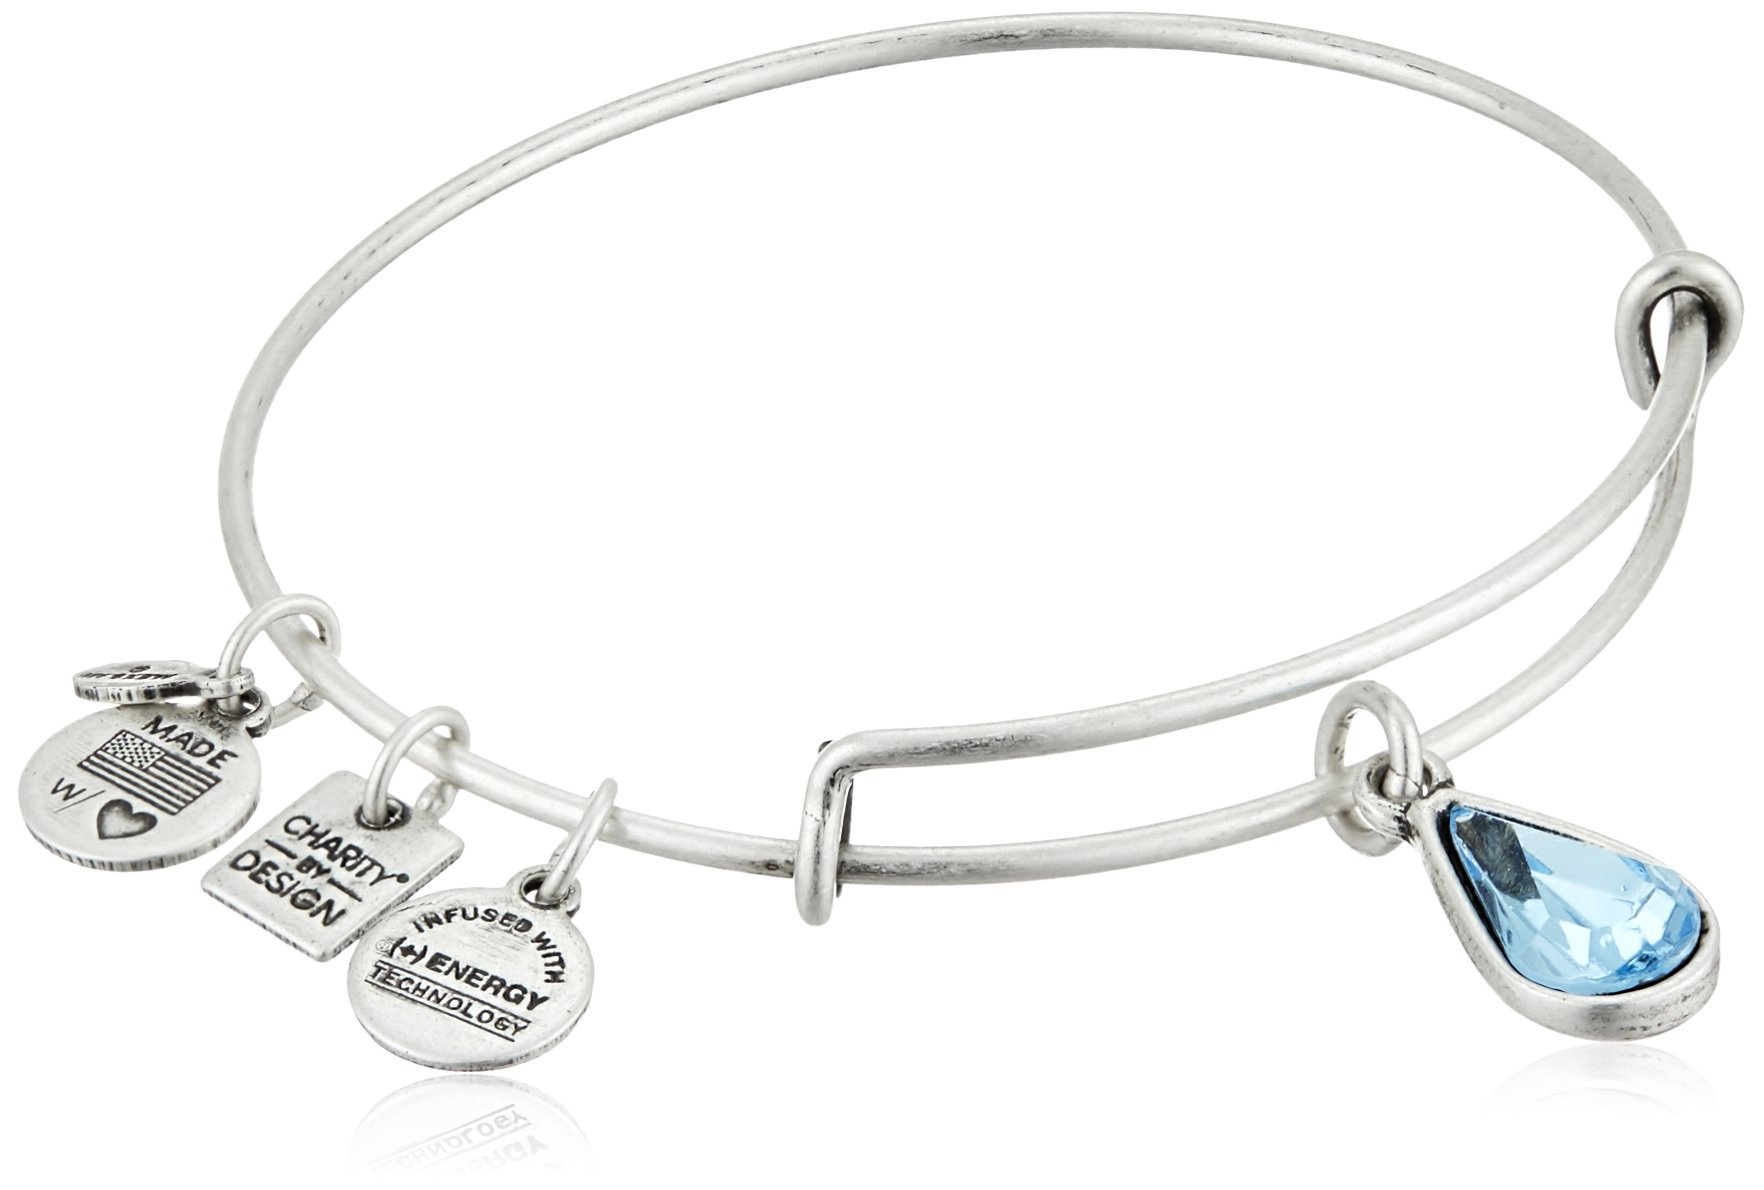 Alex and Ani Charity By Design Living Water International Rafaelian Silver Bangle Bracelet by Alex and Ani (Image #1)